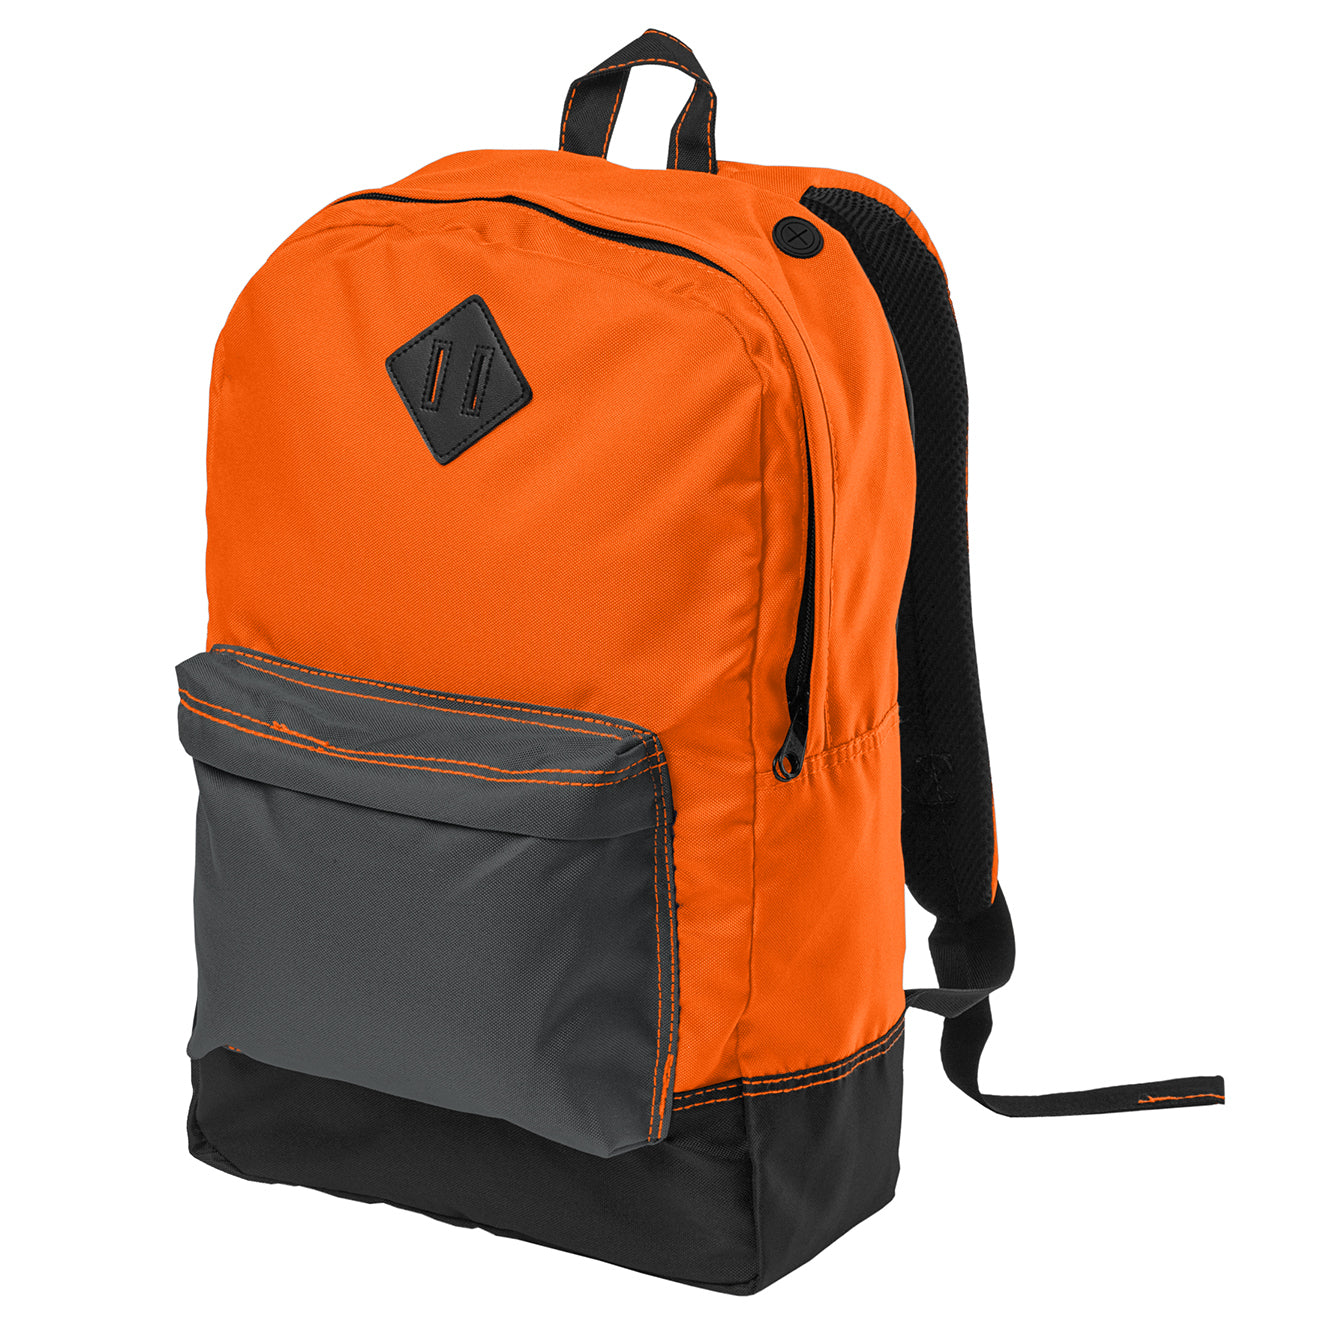 Women's Retro Backpack - Neon Orange